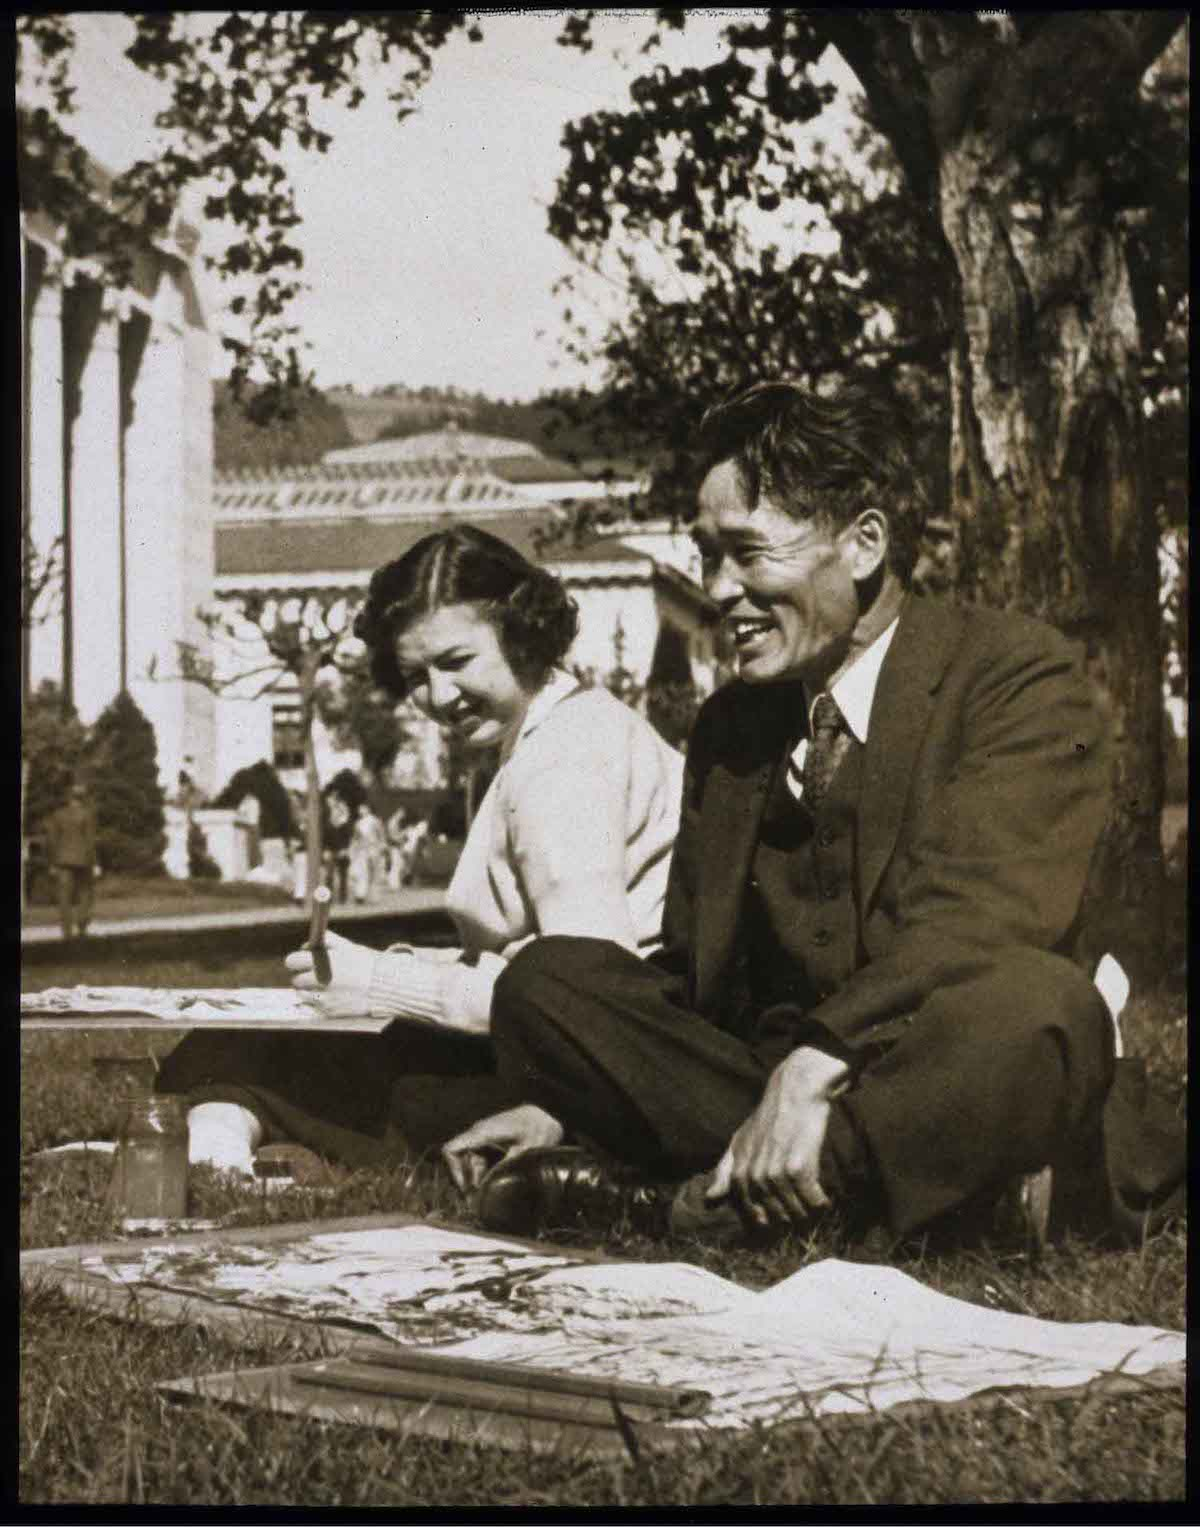 old black and white picture of a Japanese man sitting outside with a young woman. both have art materials in front of them